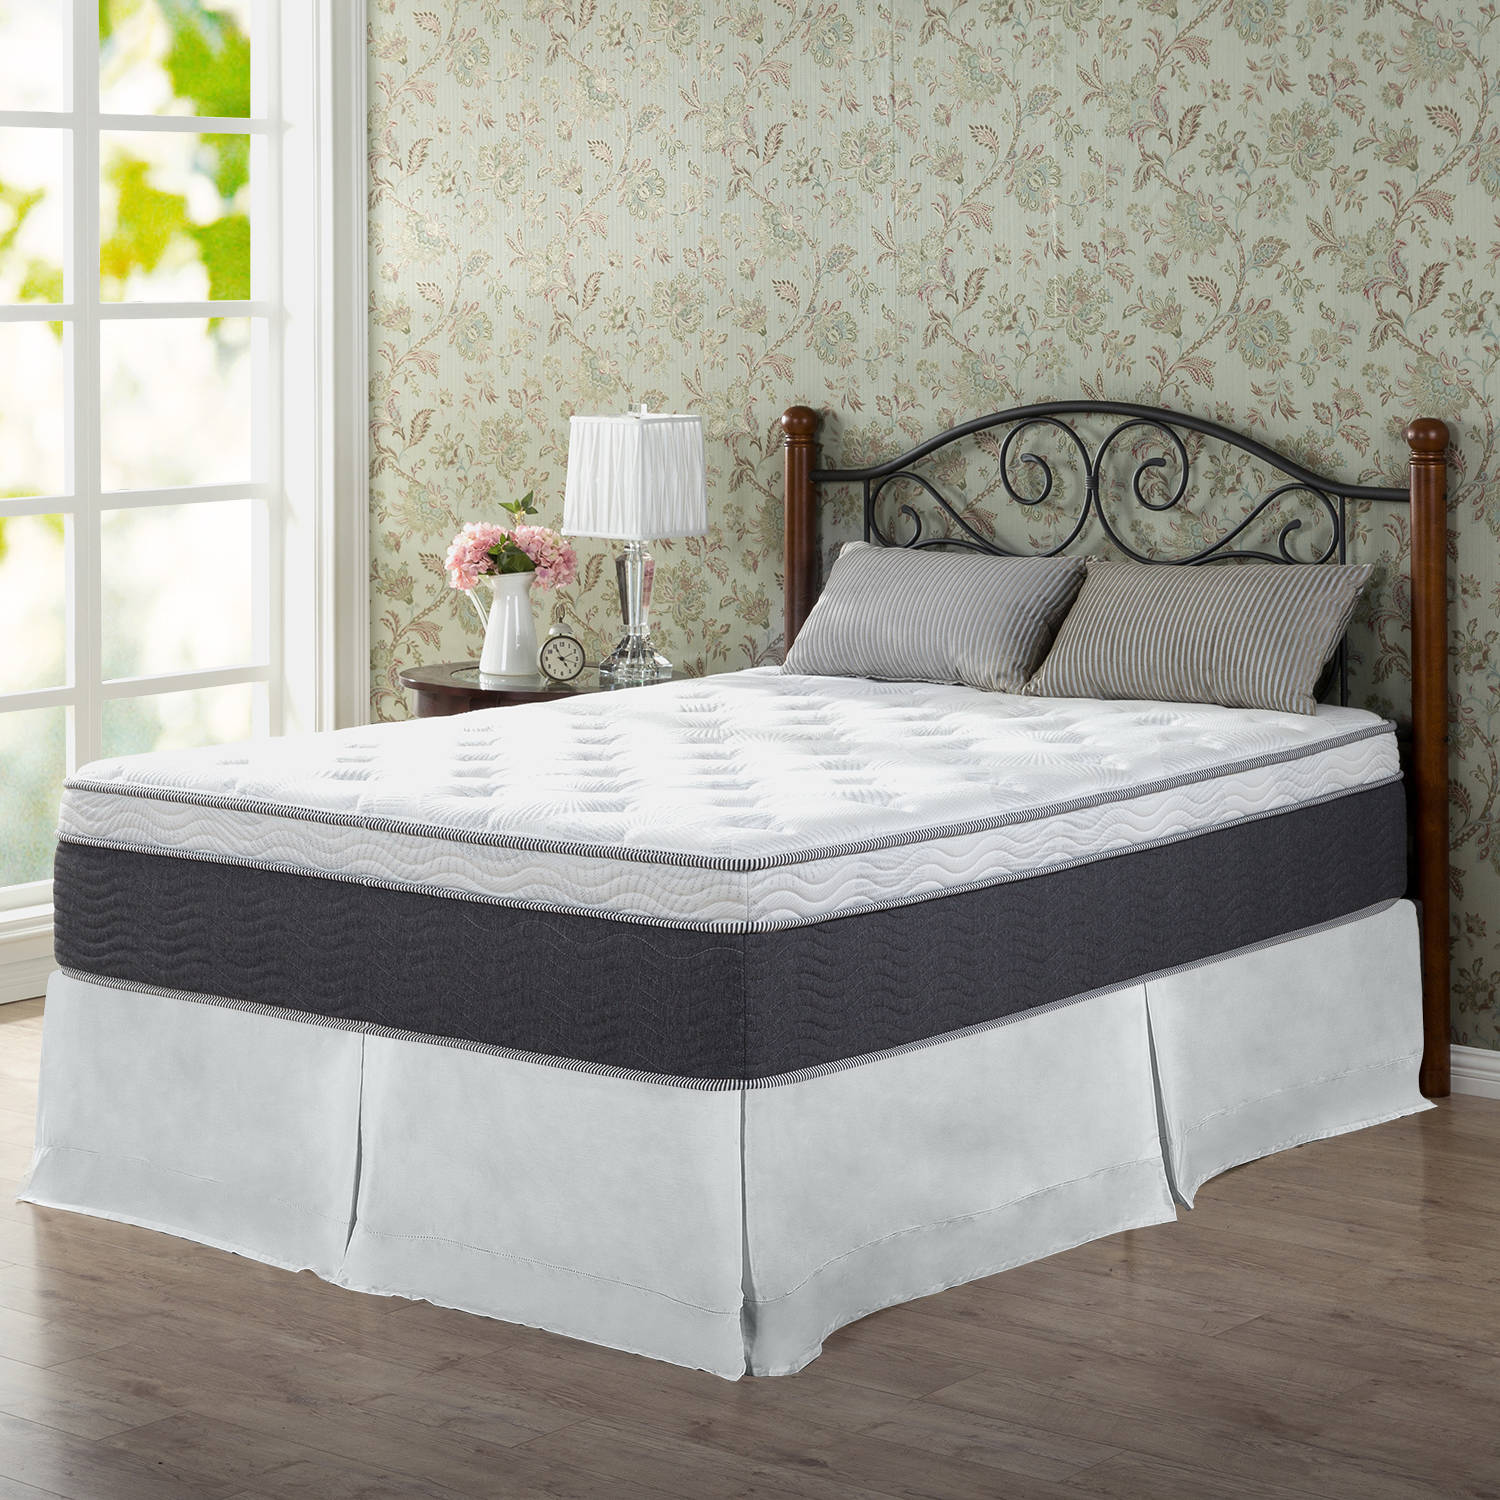 Slumber 1 By Zinus 13 5 Inch Adaptive Euro Top Spring